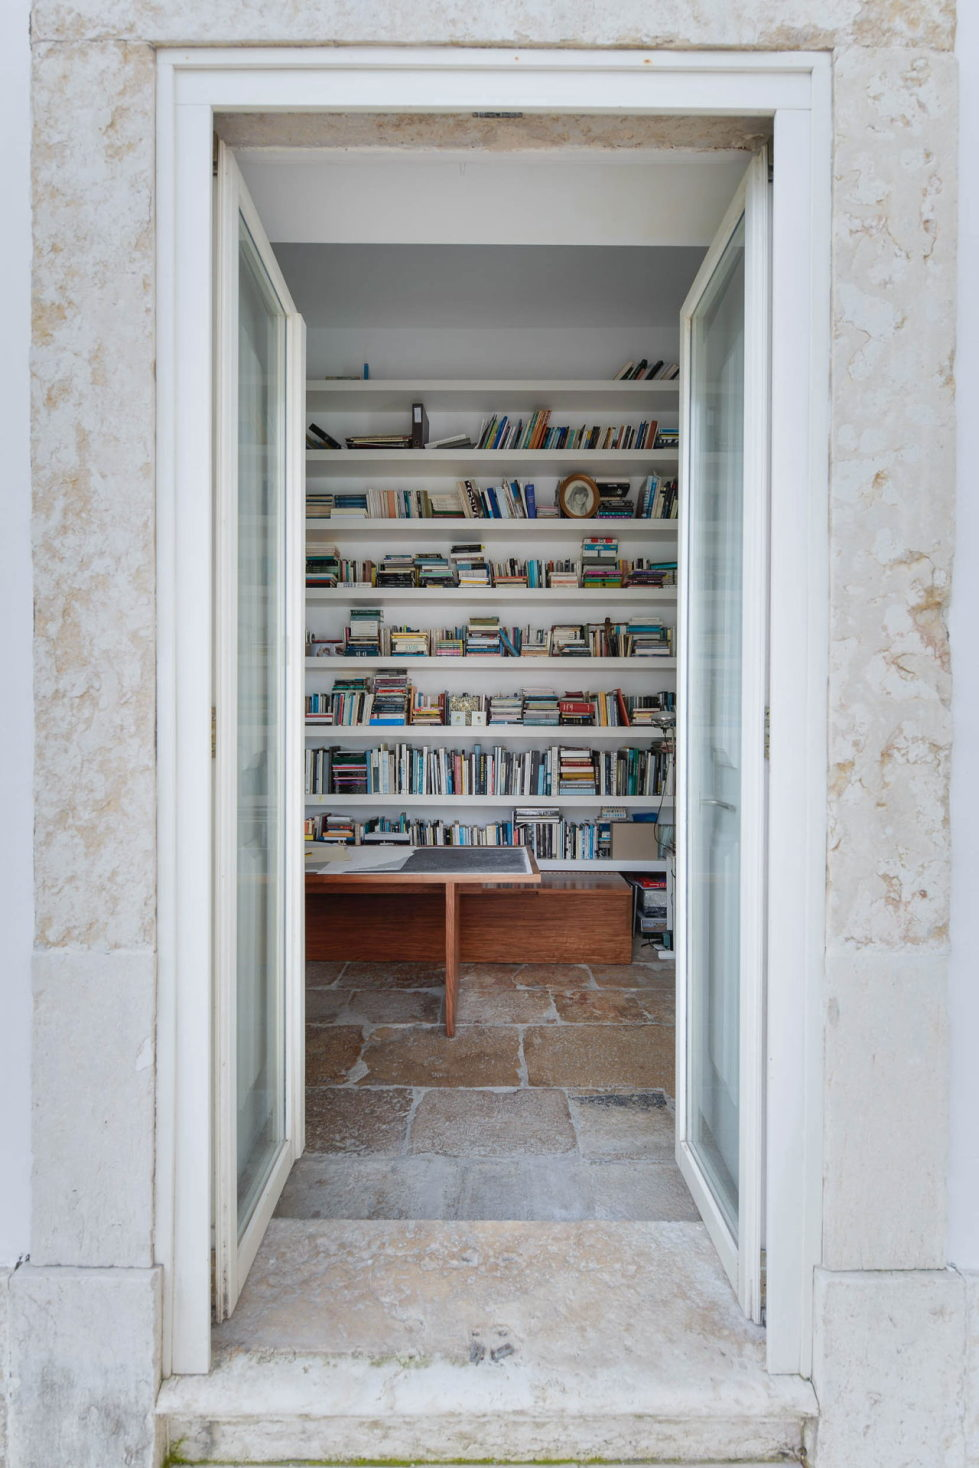 The luxury interior by Aires Mateus Arquitectos, Lisbon